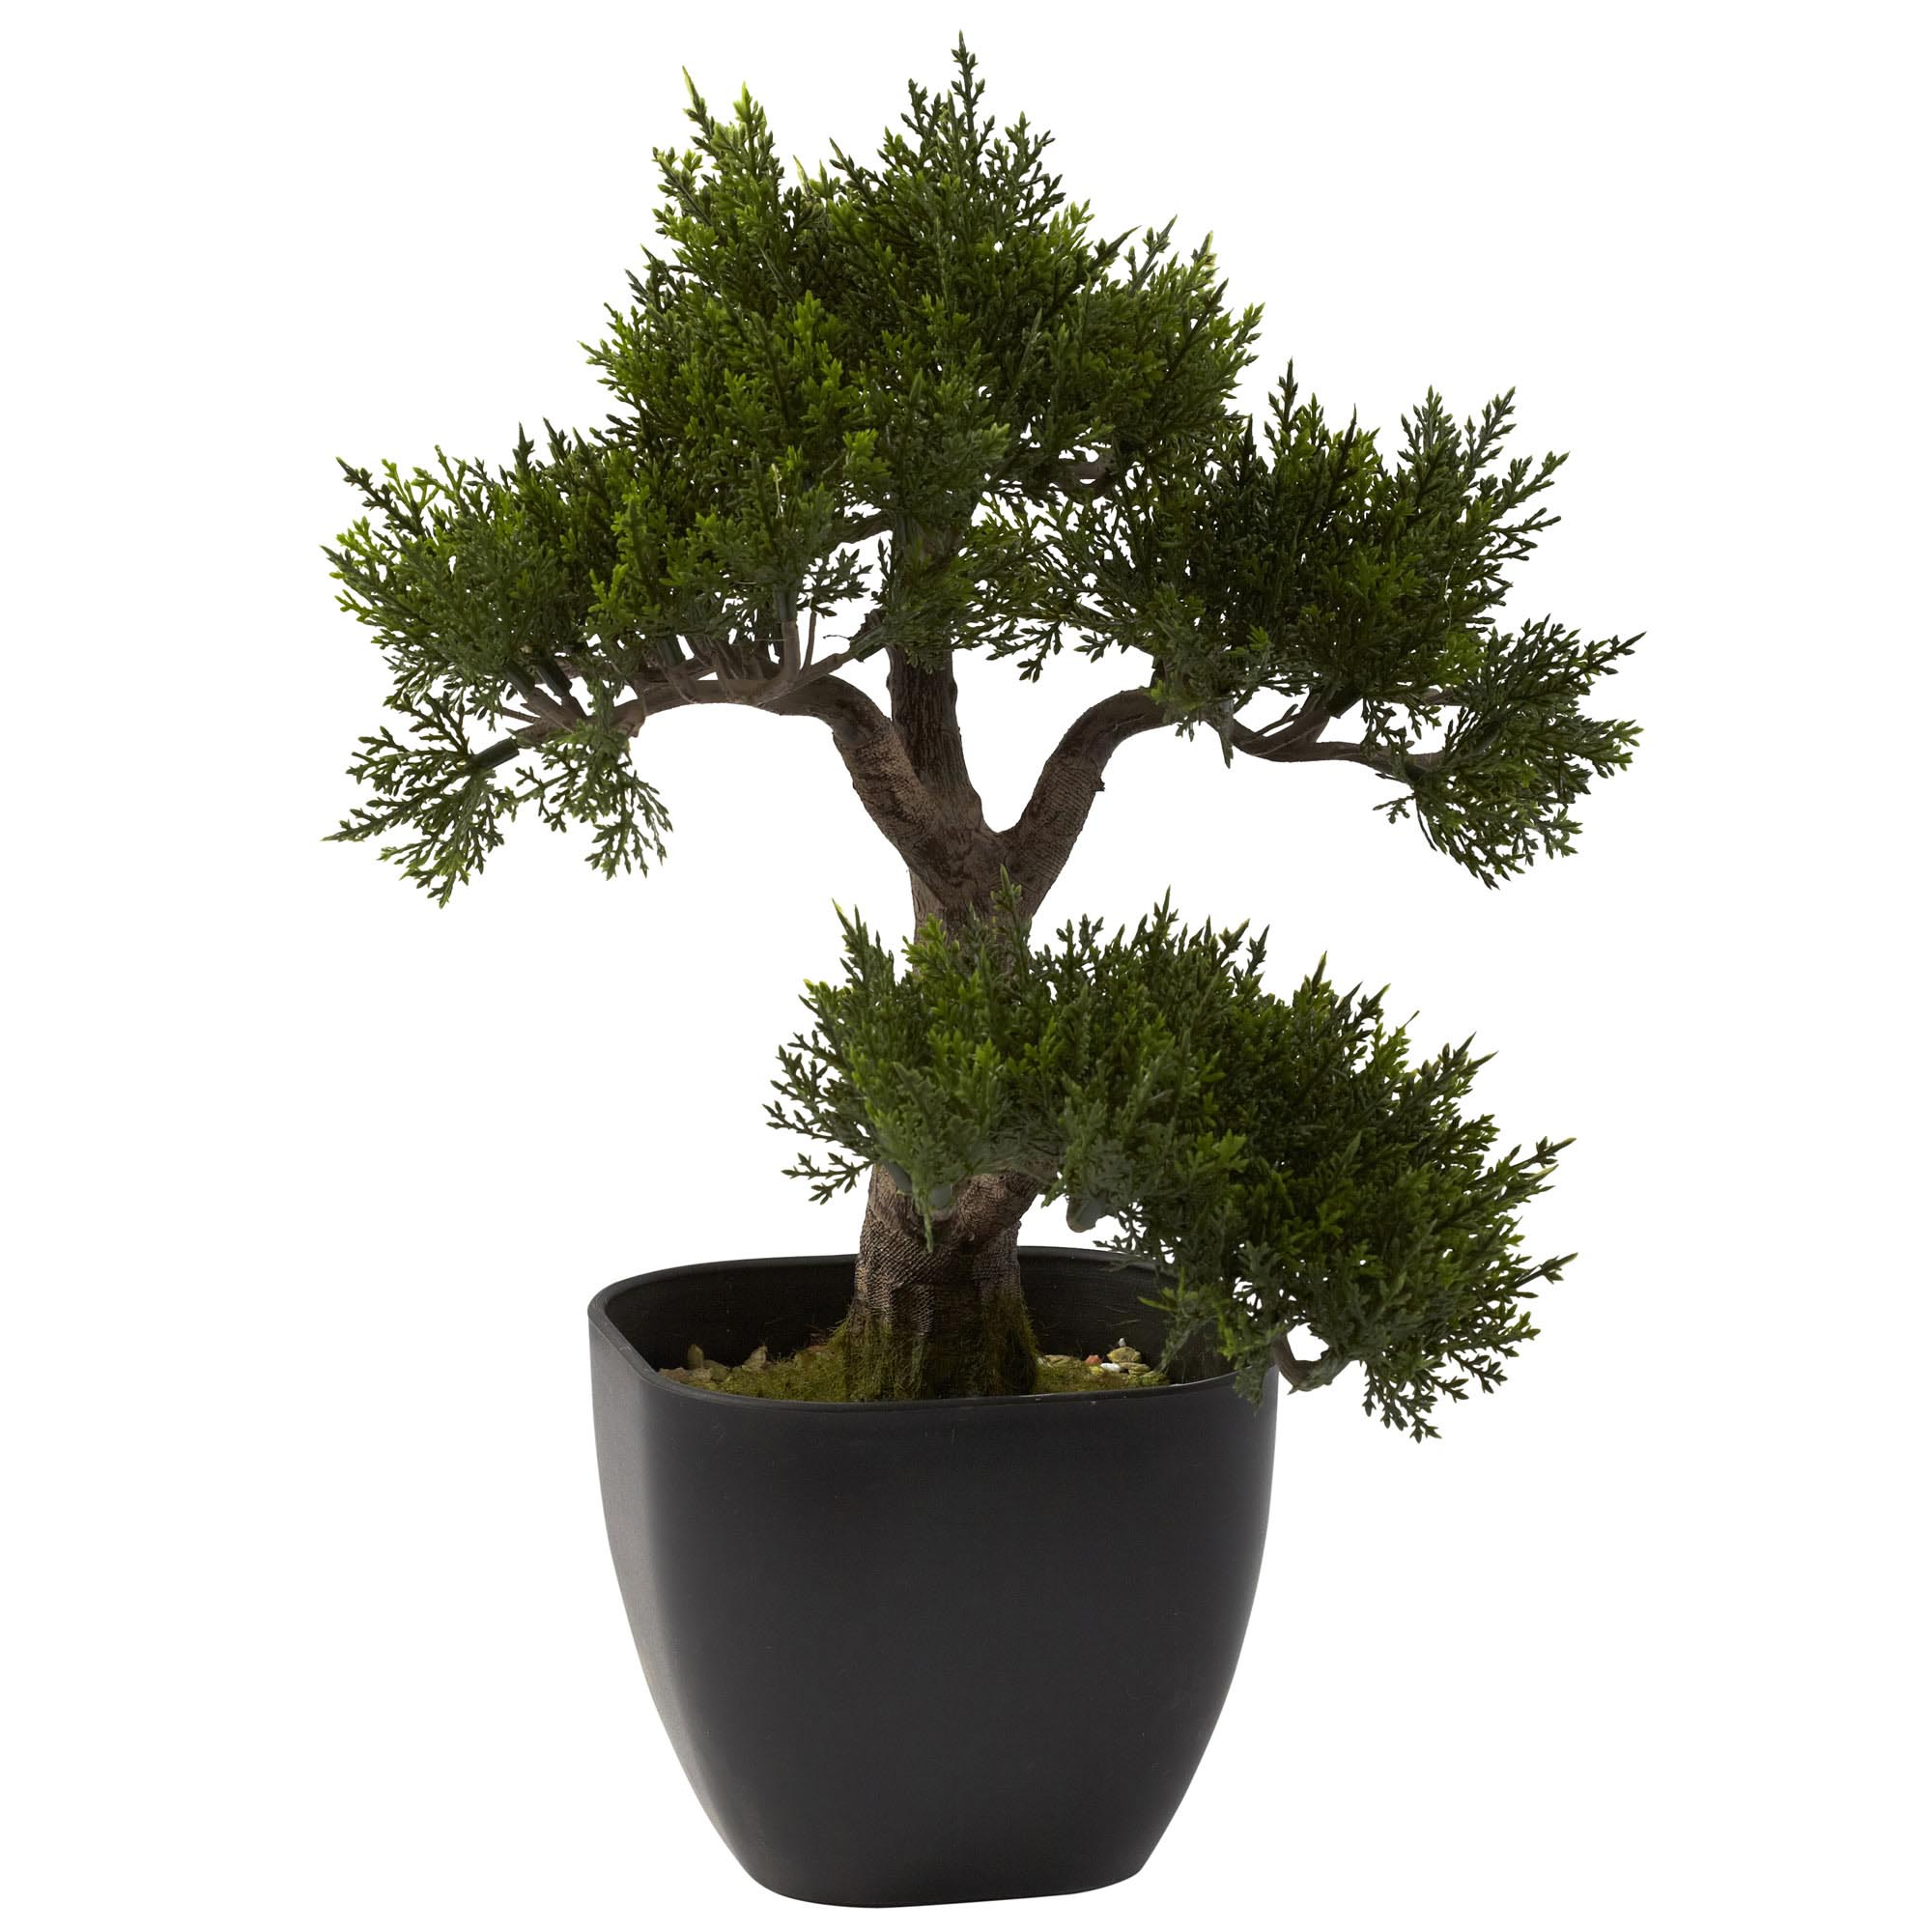 Preserved cypress bonsai 7 h contemporary phoenix by botanical - 15 Inch Artificial Cedar Bonsai In Planter